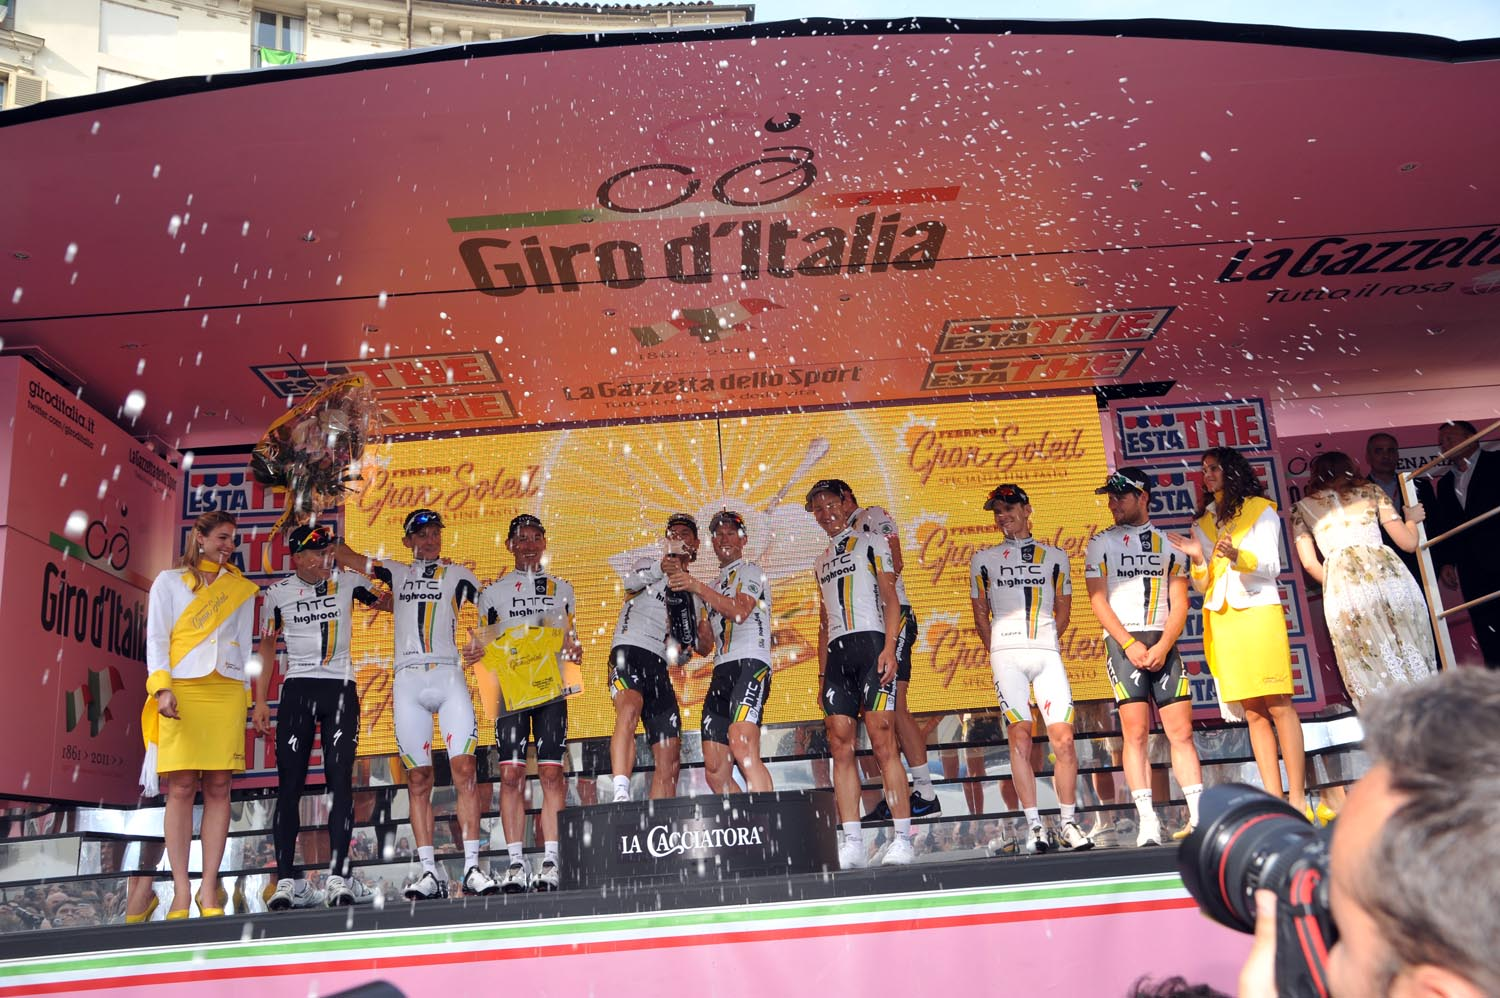 HTC-Highroad on podium, Giro d